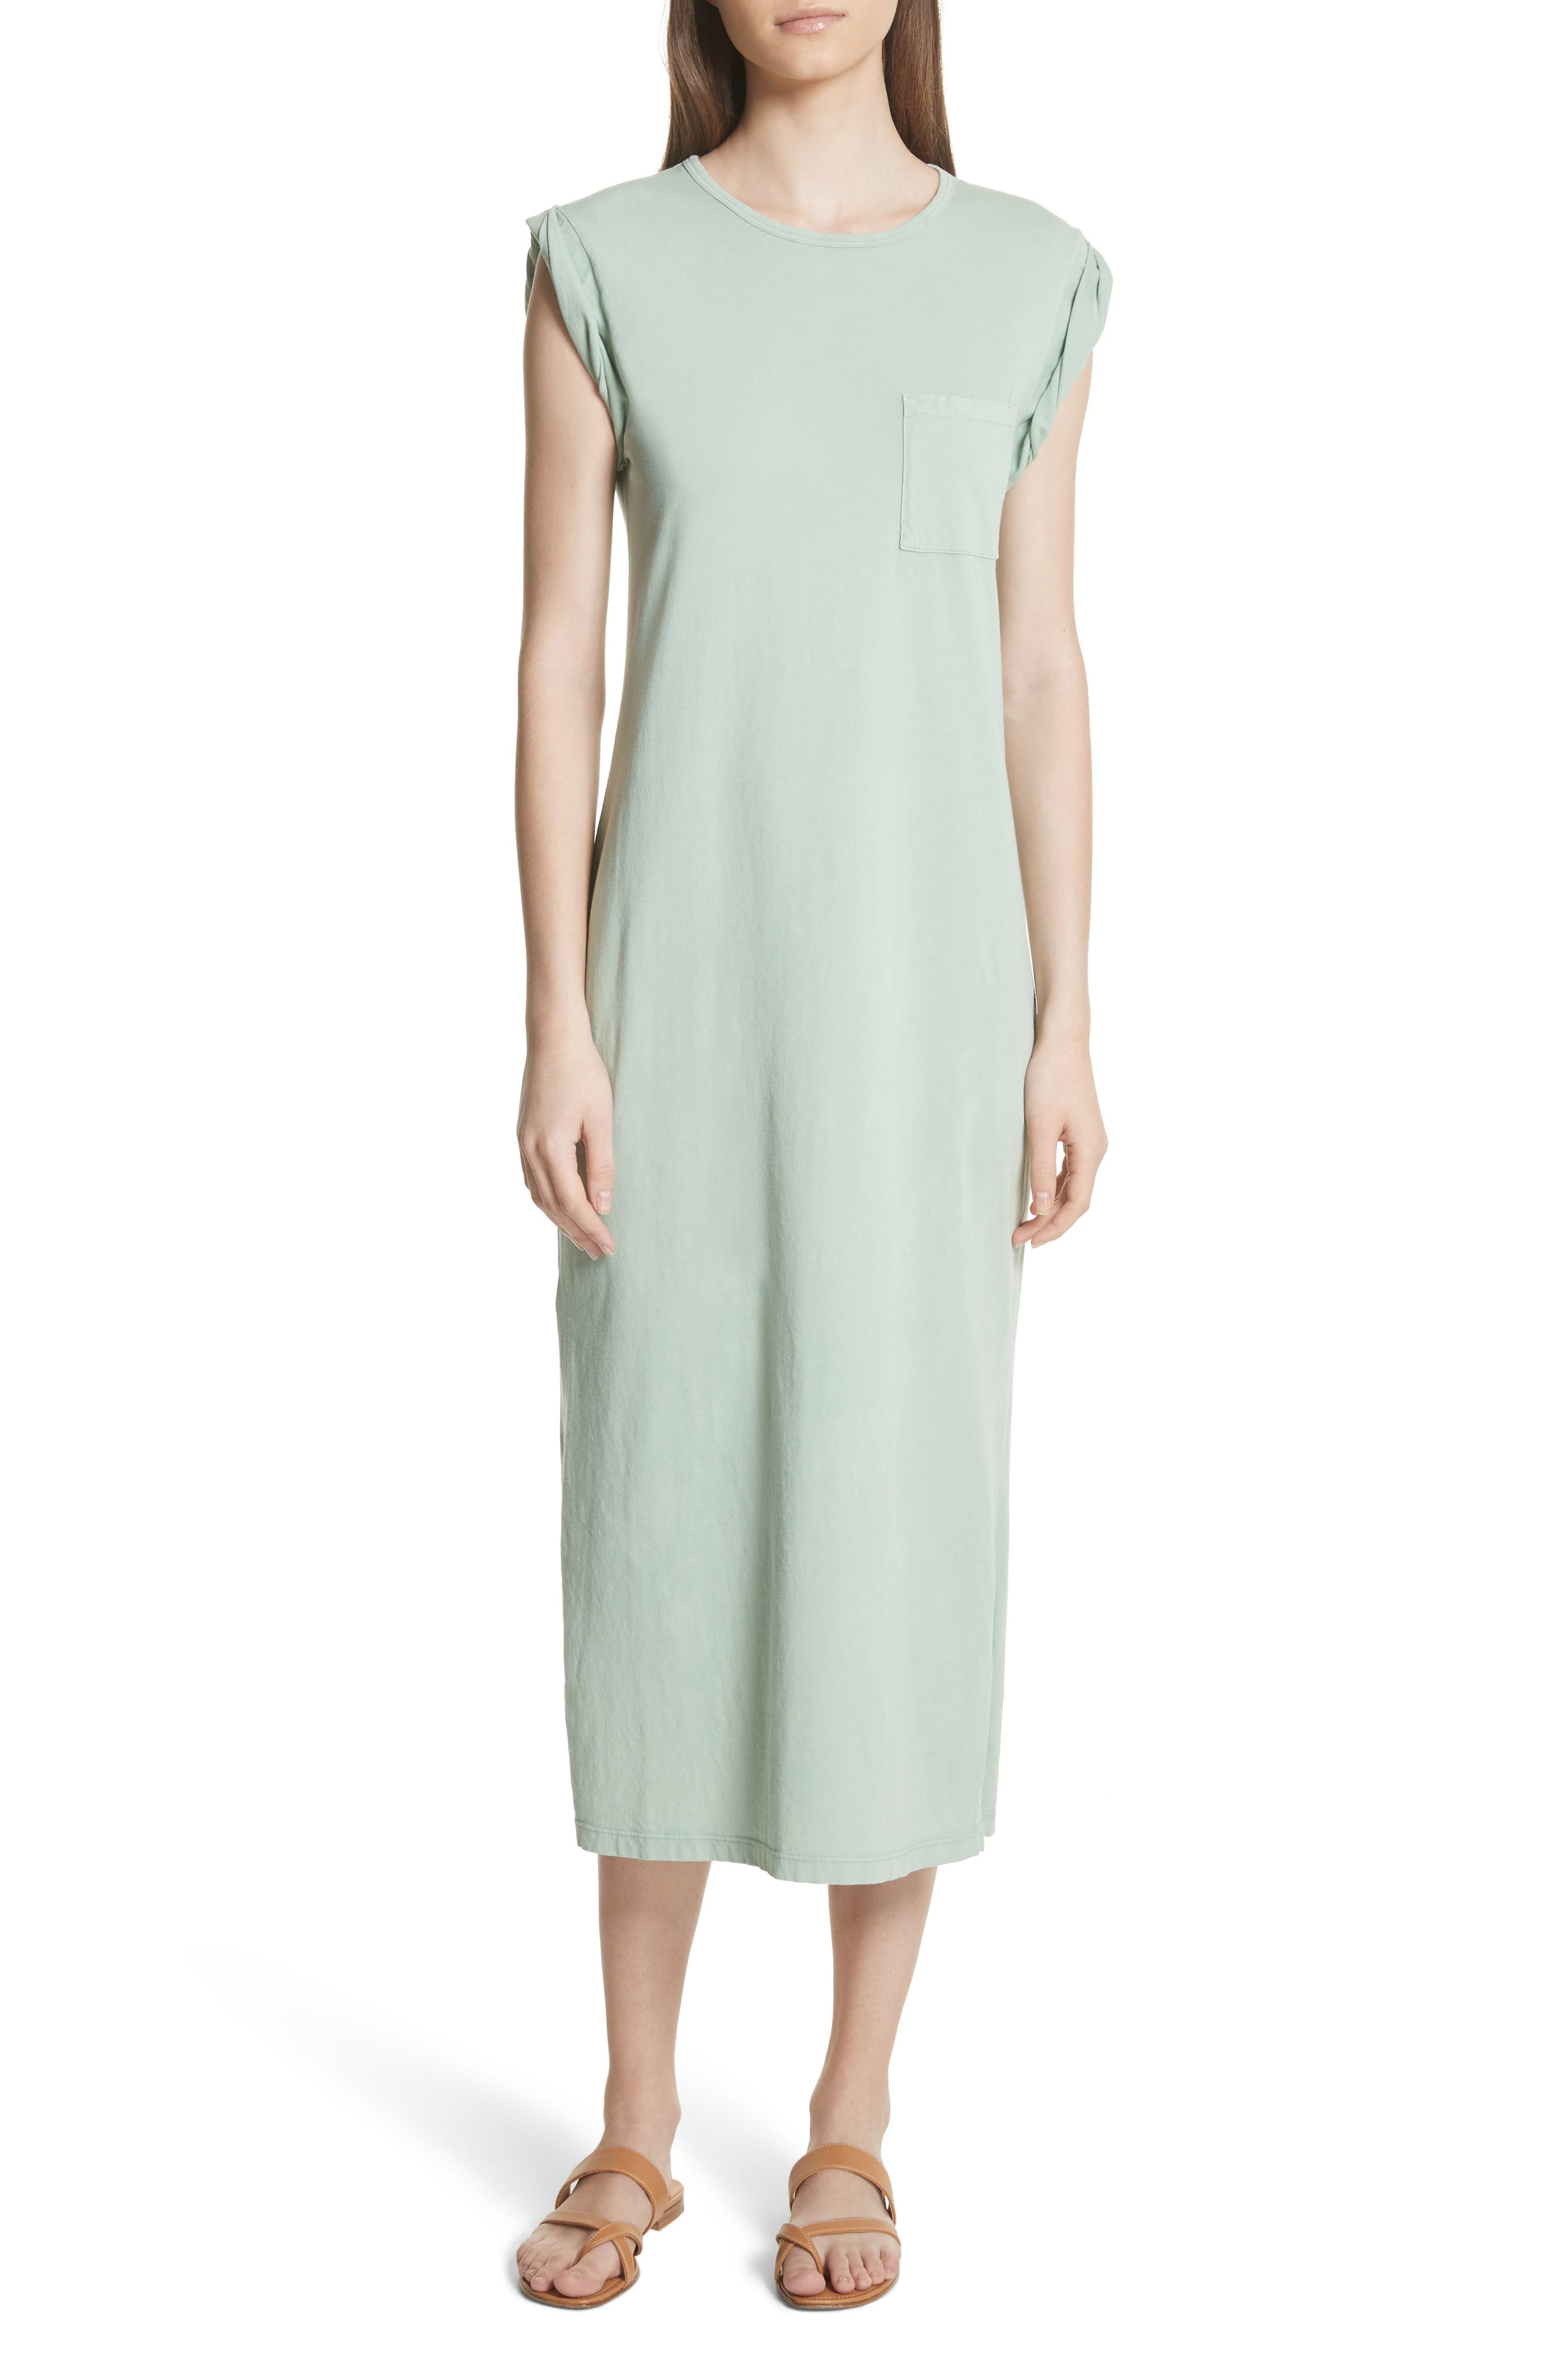 Muscle P Relaxed T-Shirt Dress,                             Main thumbnail 1, color,                             391